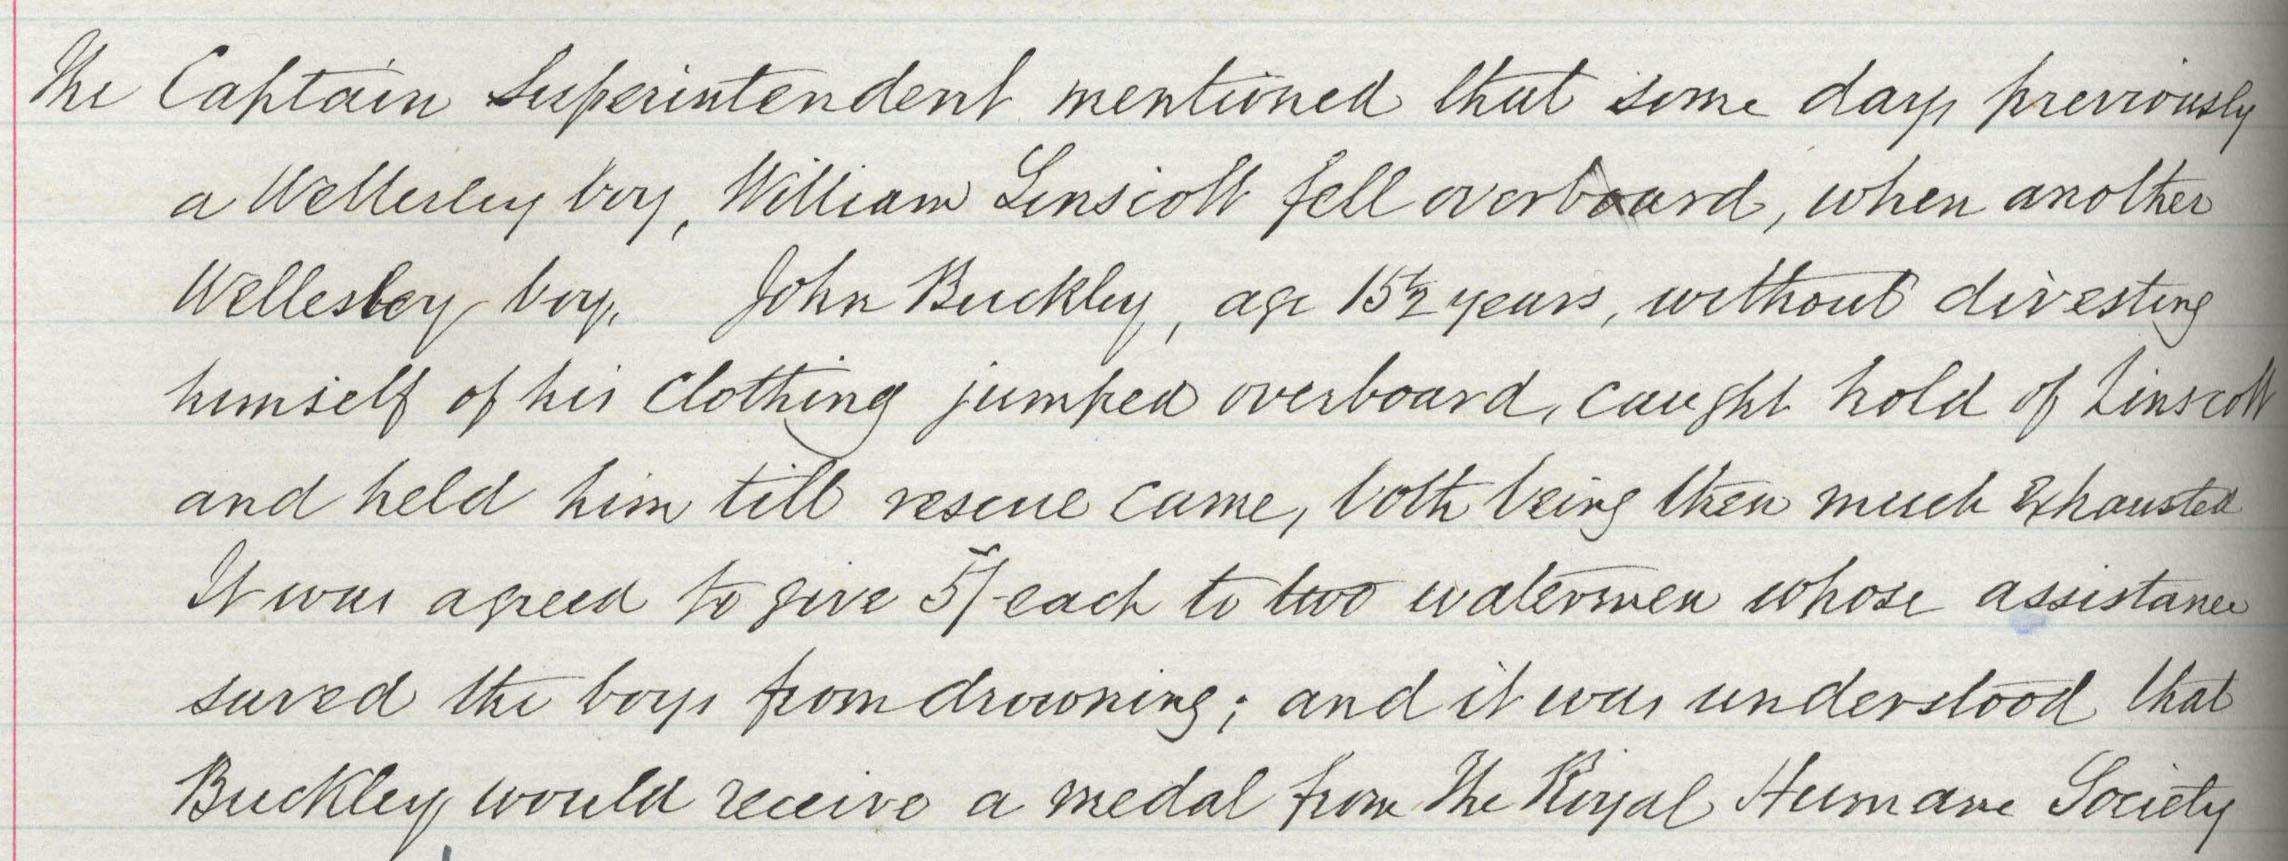 Minute Book Entry 16 December 1897